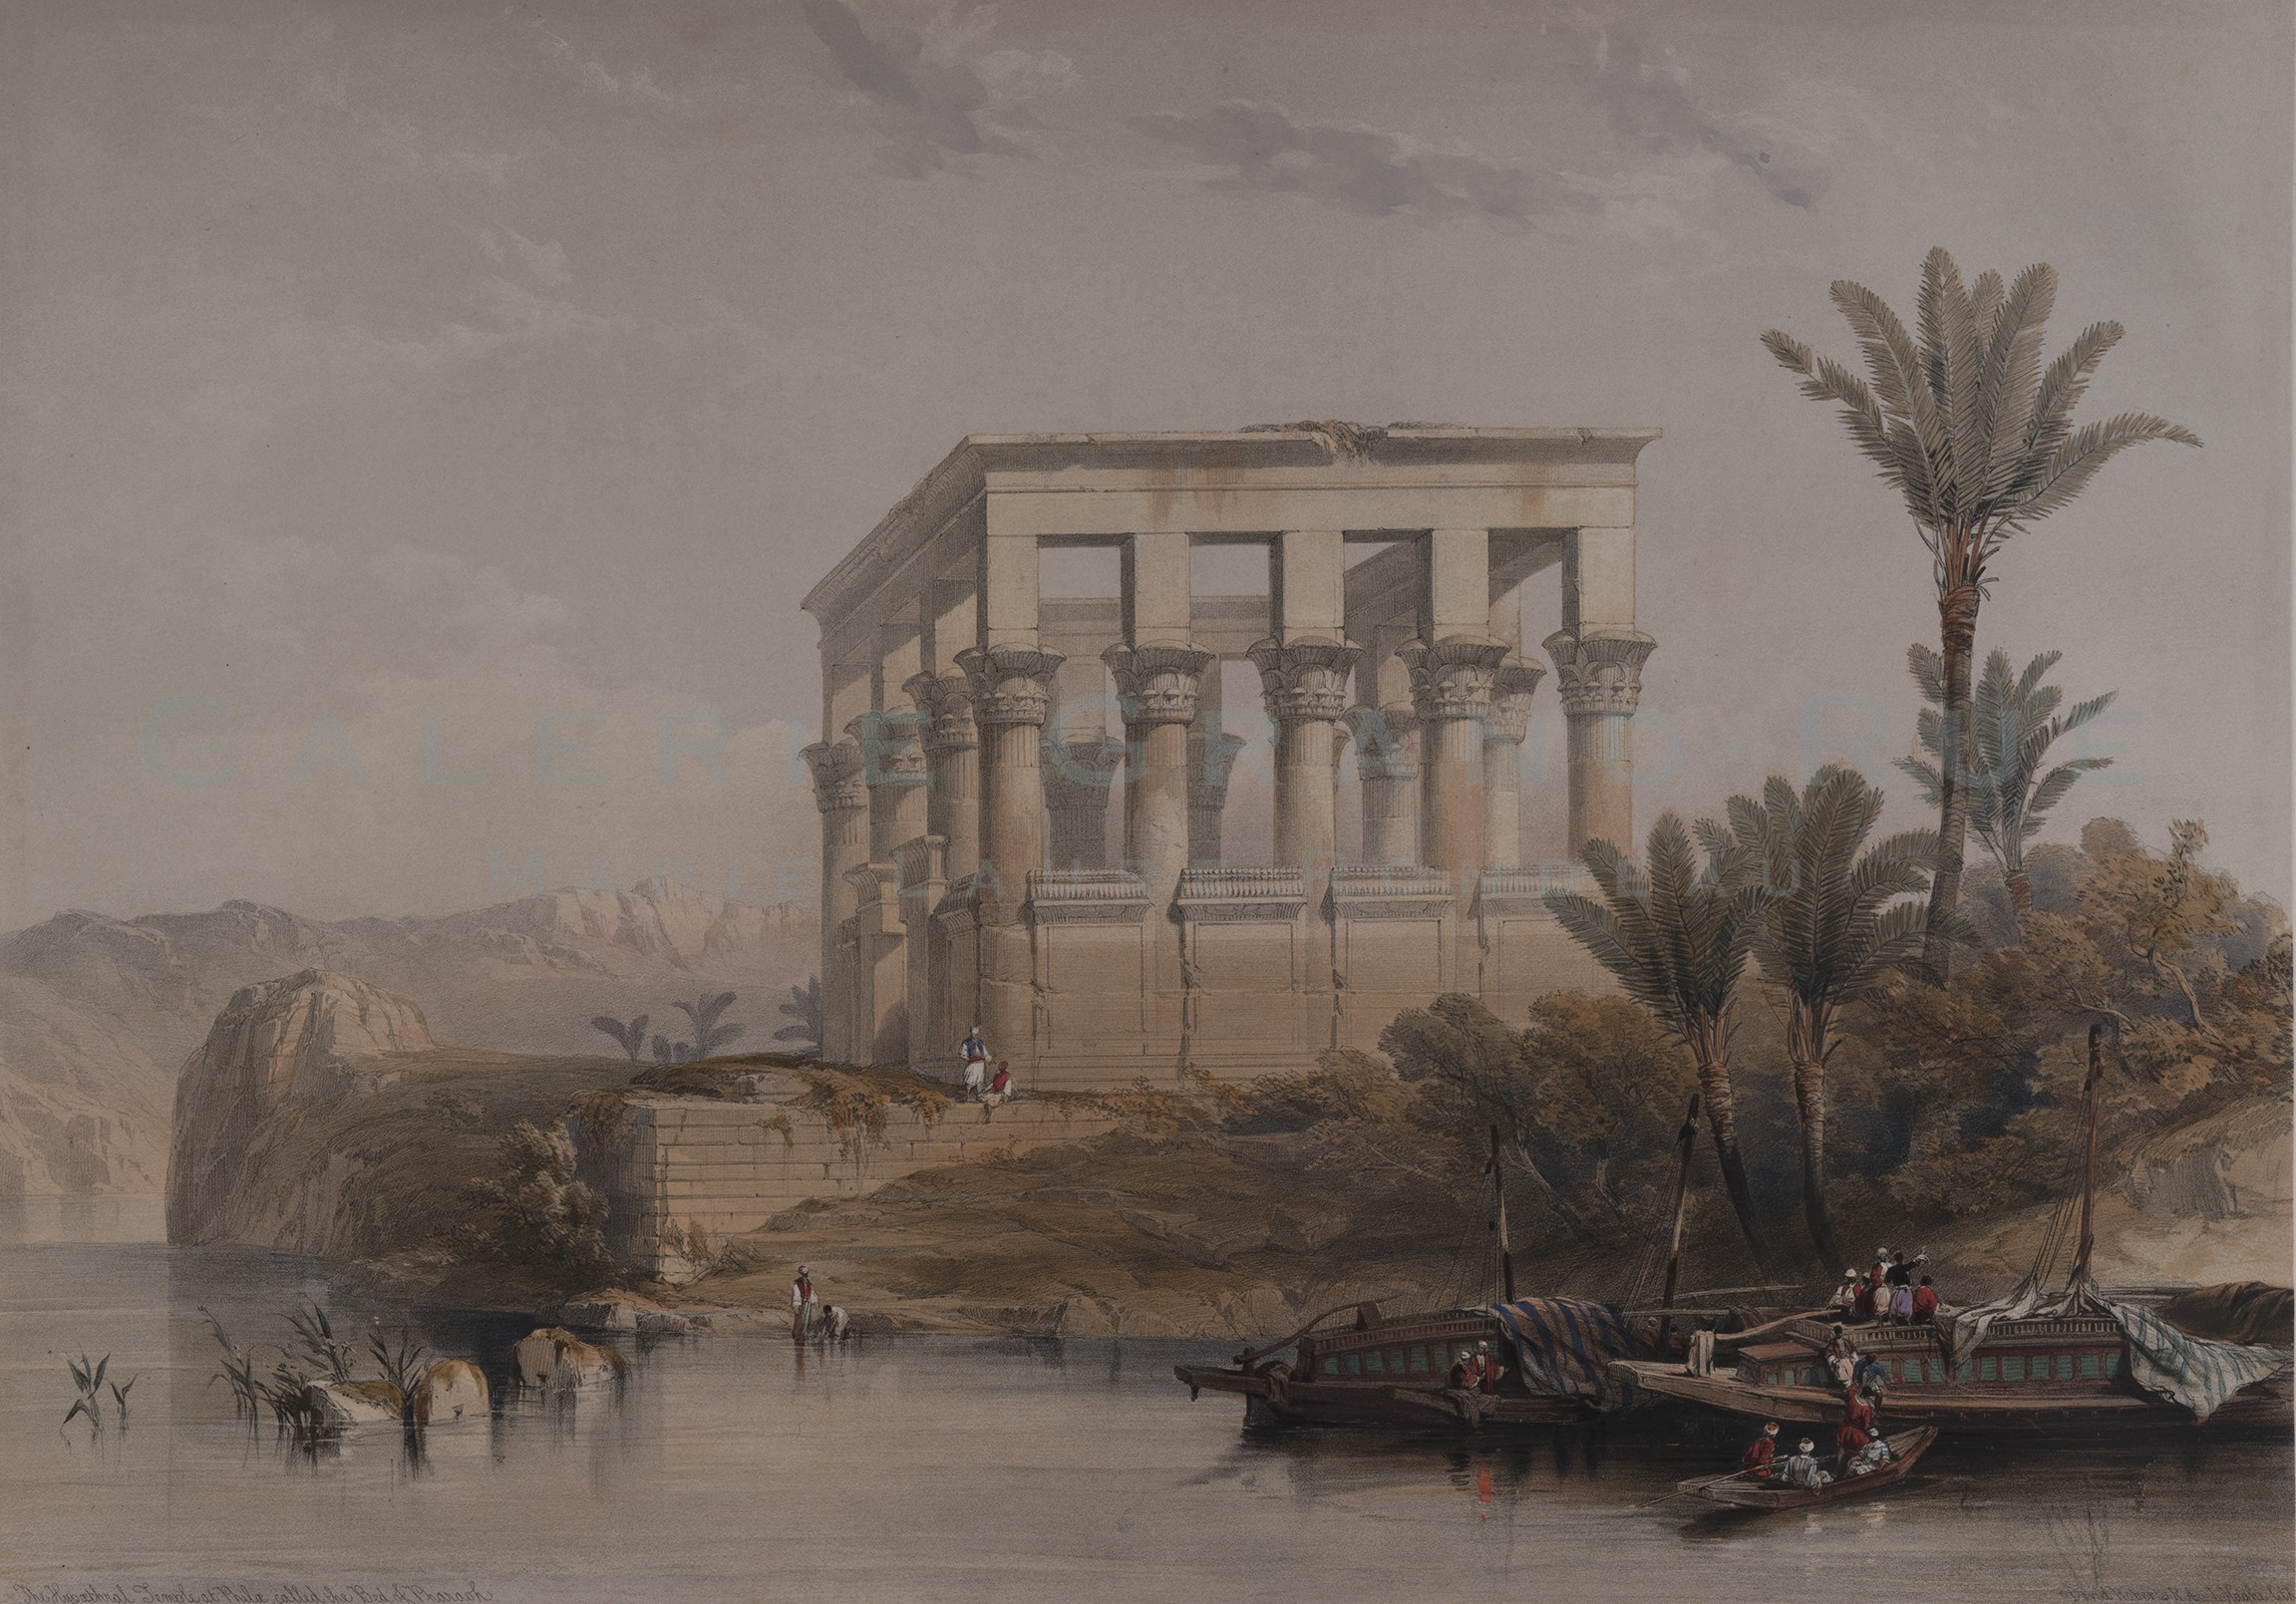 The Hypoethral Temple at Philae, called the Bed of Pharaoh.